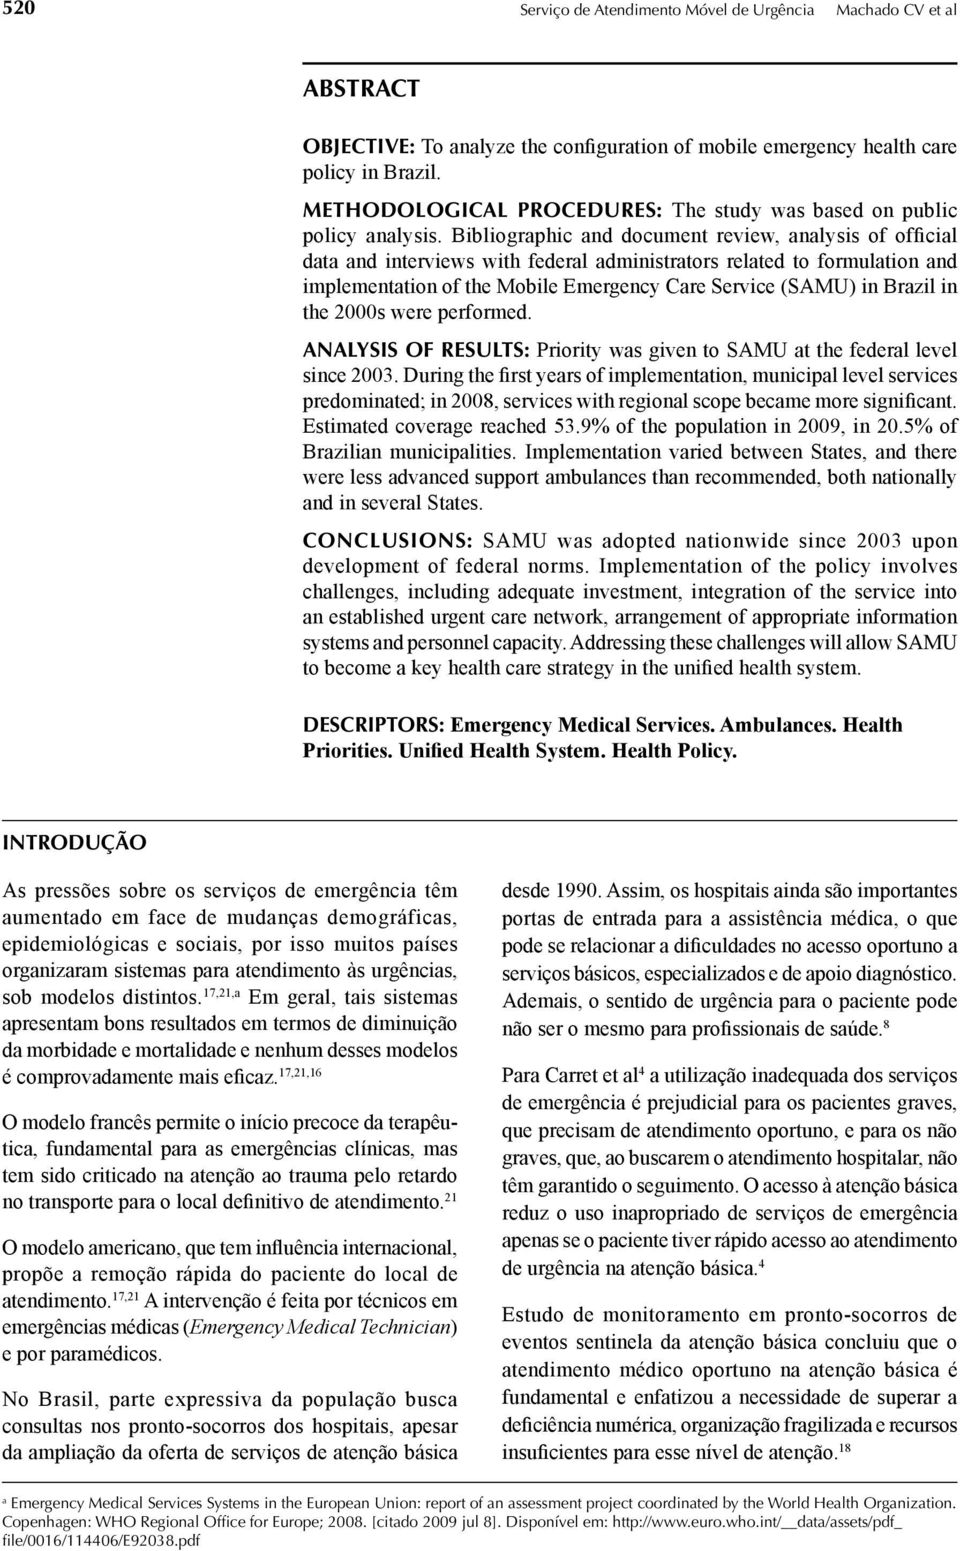 Bibliographic and document review, analysis of official data and interviews with federal administrators related to formulation and implementation of the Mobile Emergency Care Service (SAMU) in Brazil